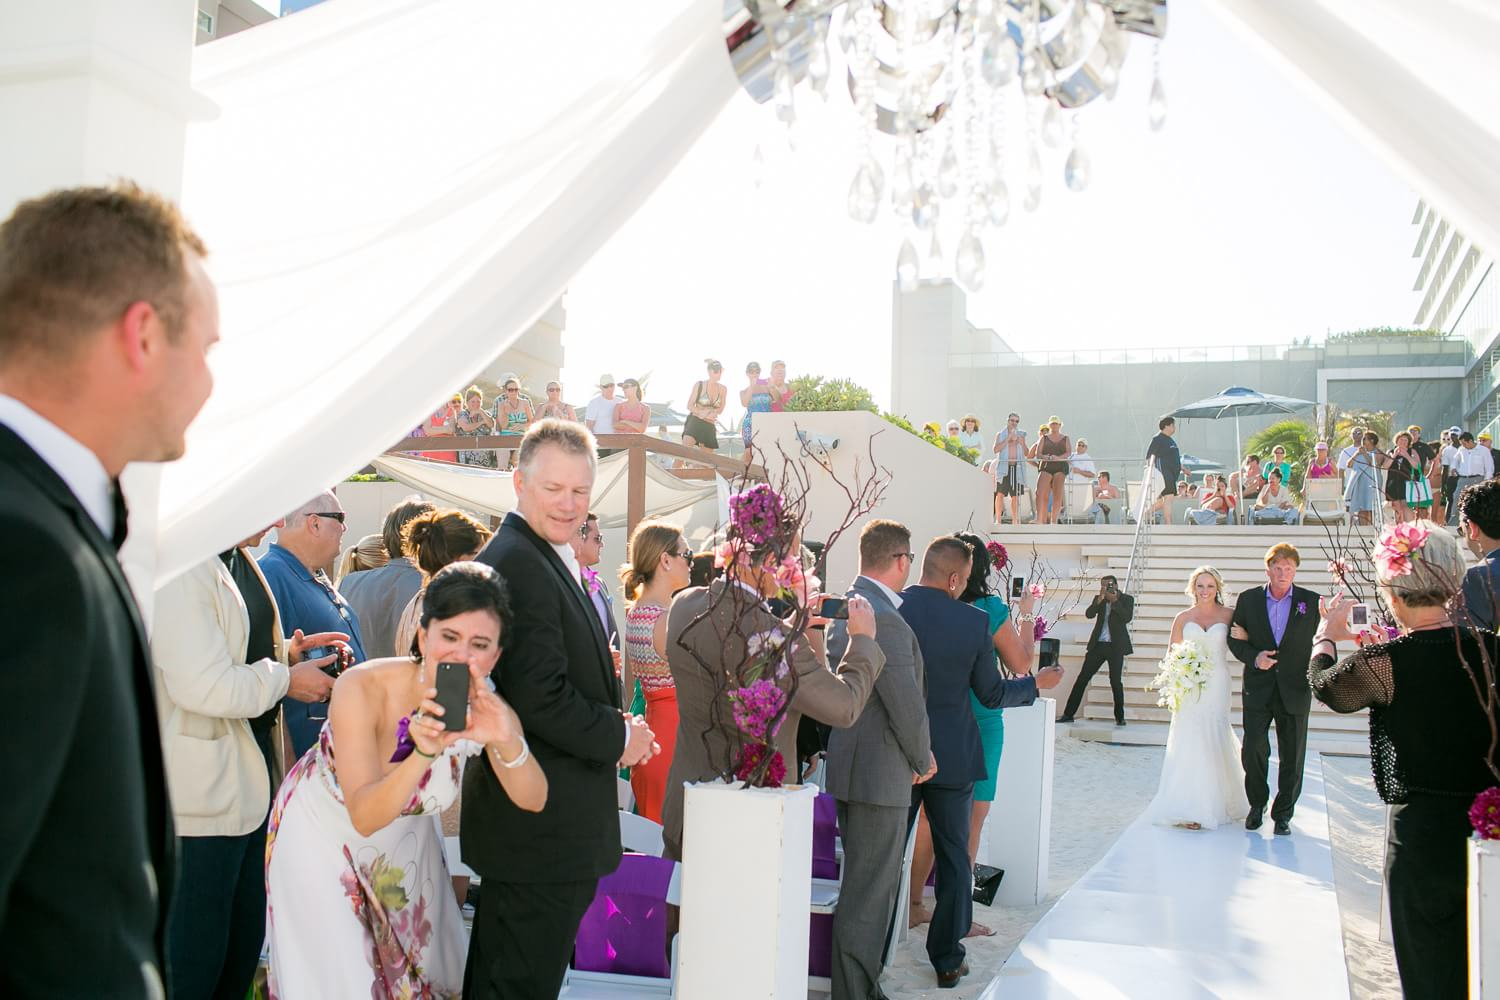 Bride walking down the isle at Secrets the vine Cancun wedding.